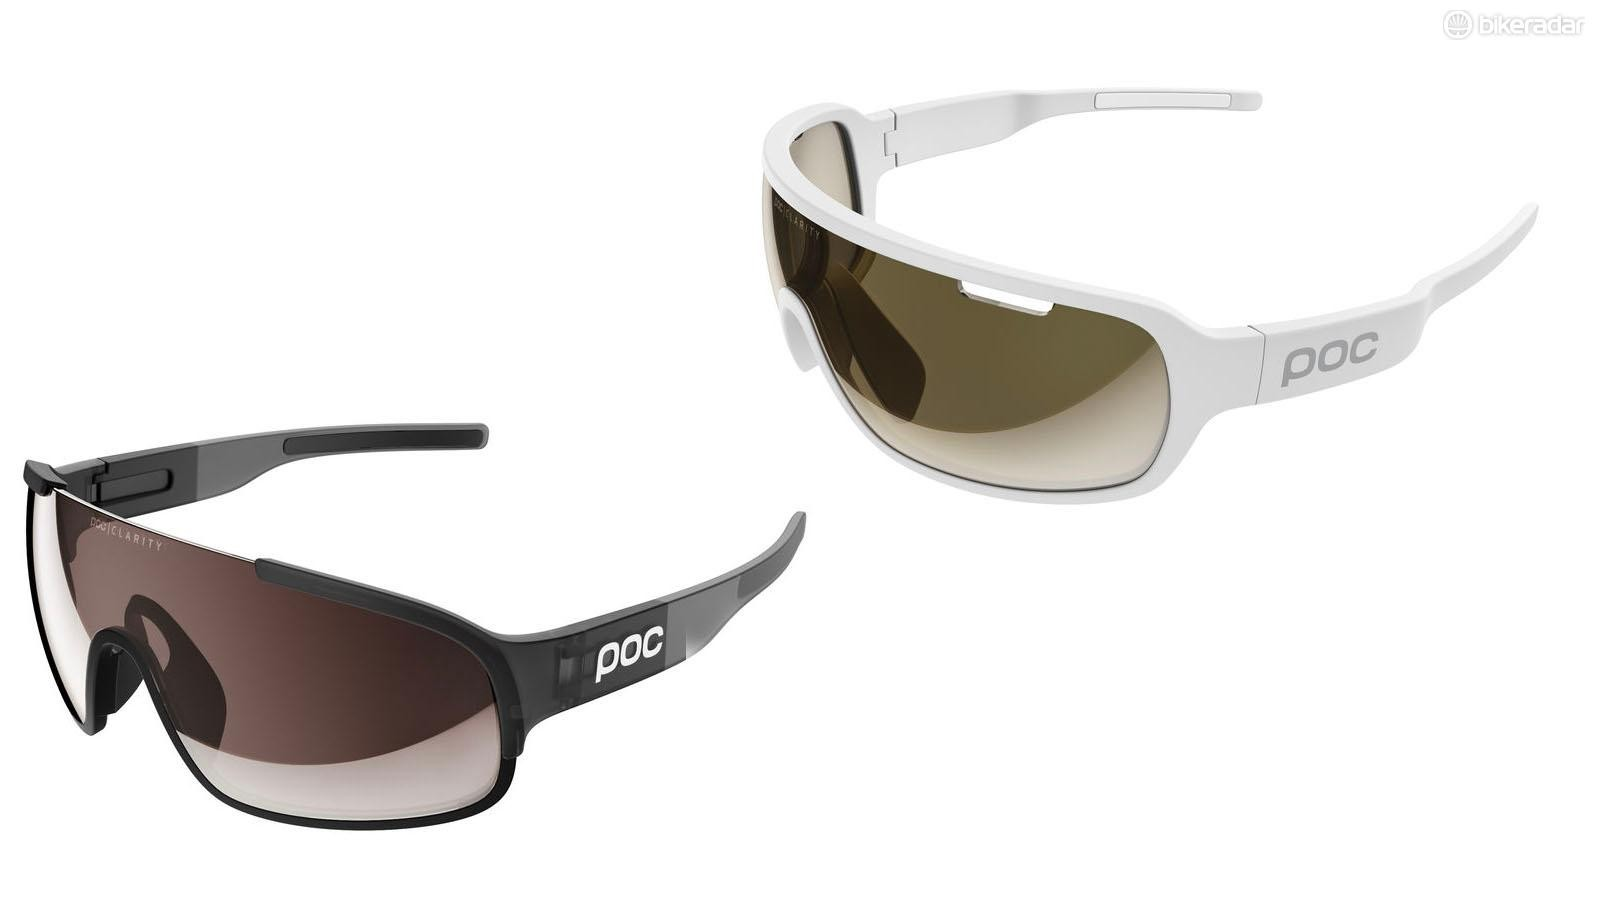 The brand has also added the Clarity lens to its range of performance sunnies